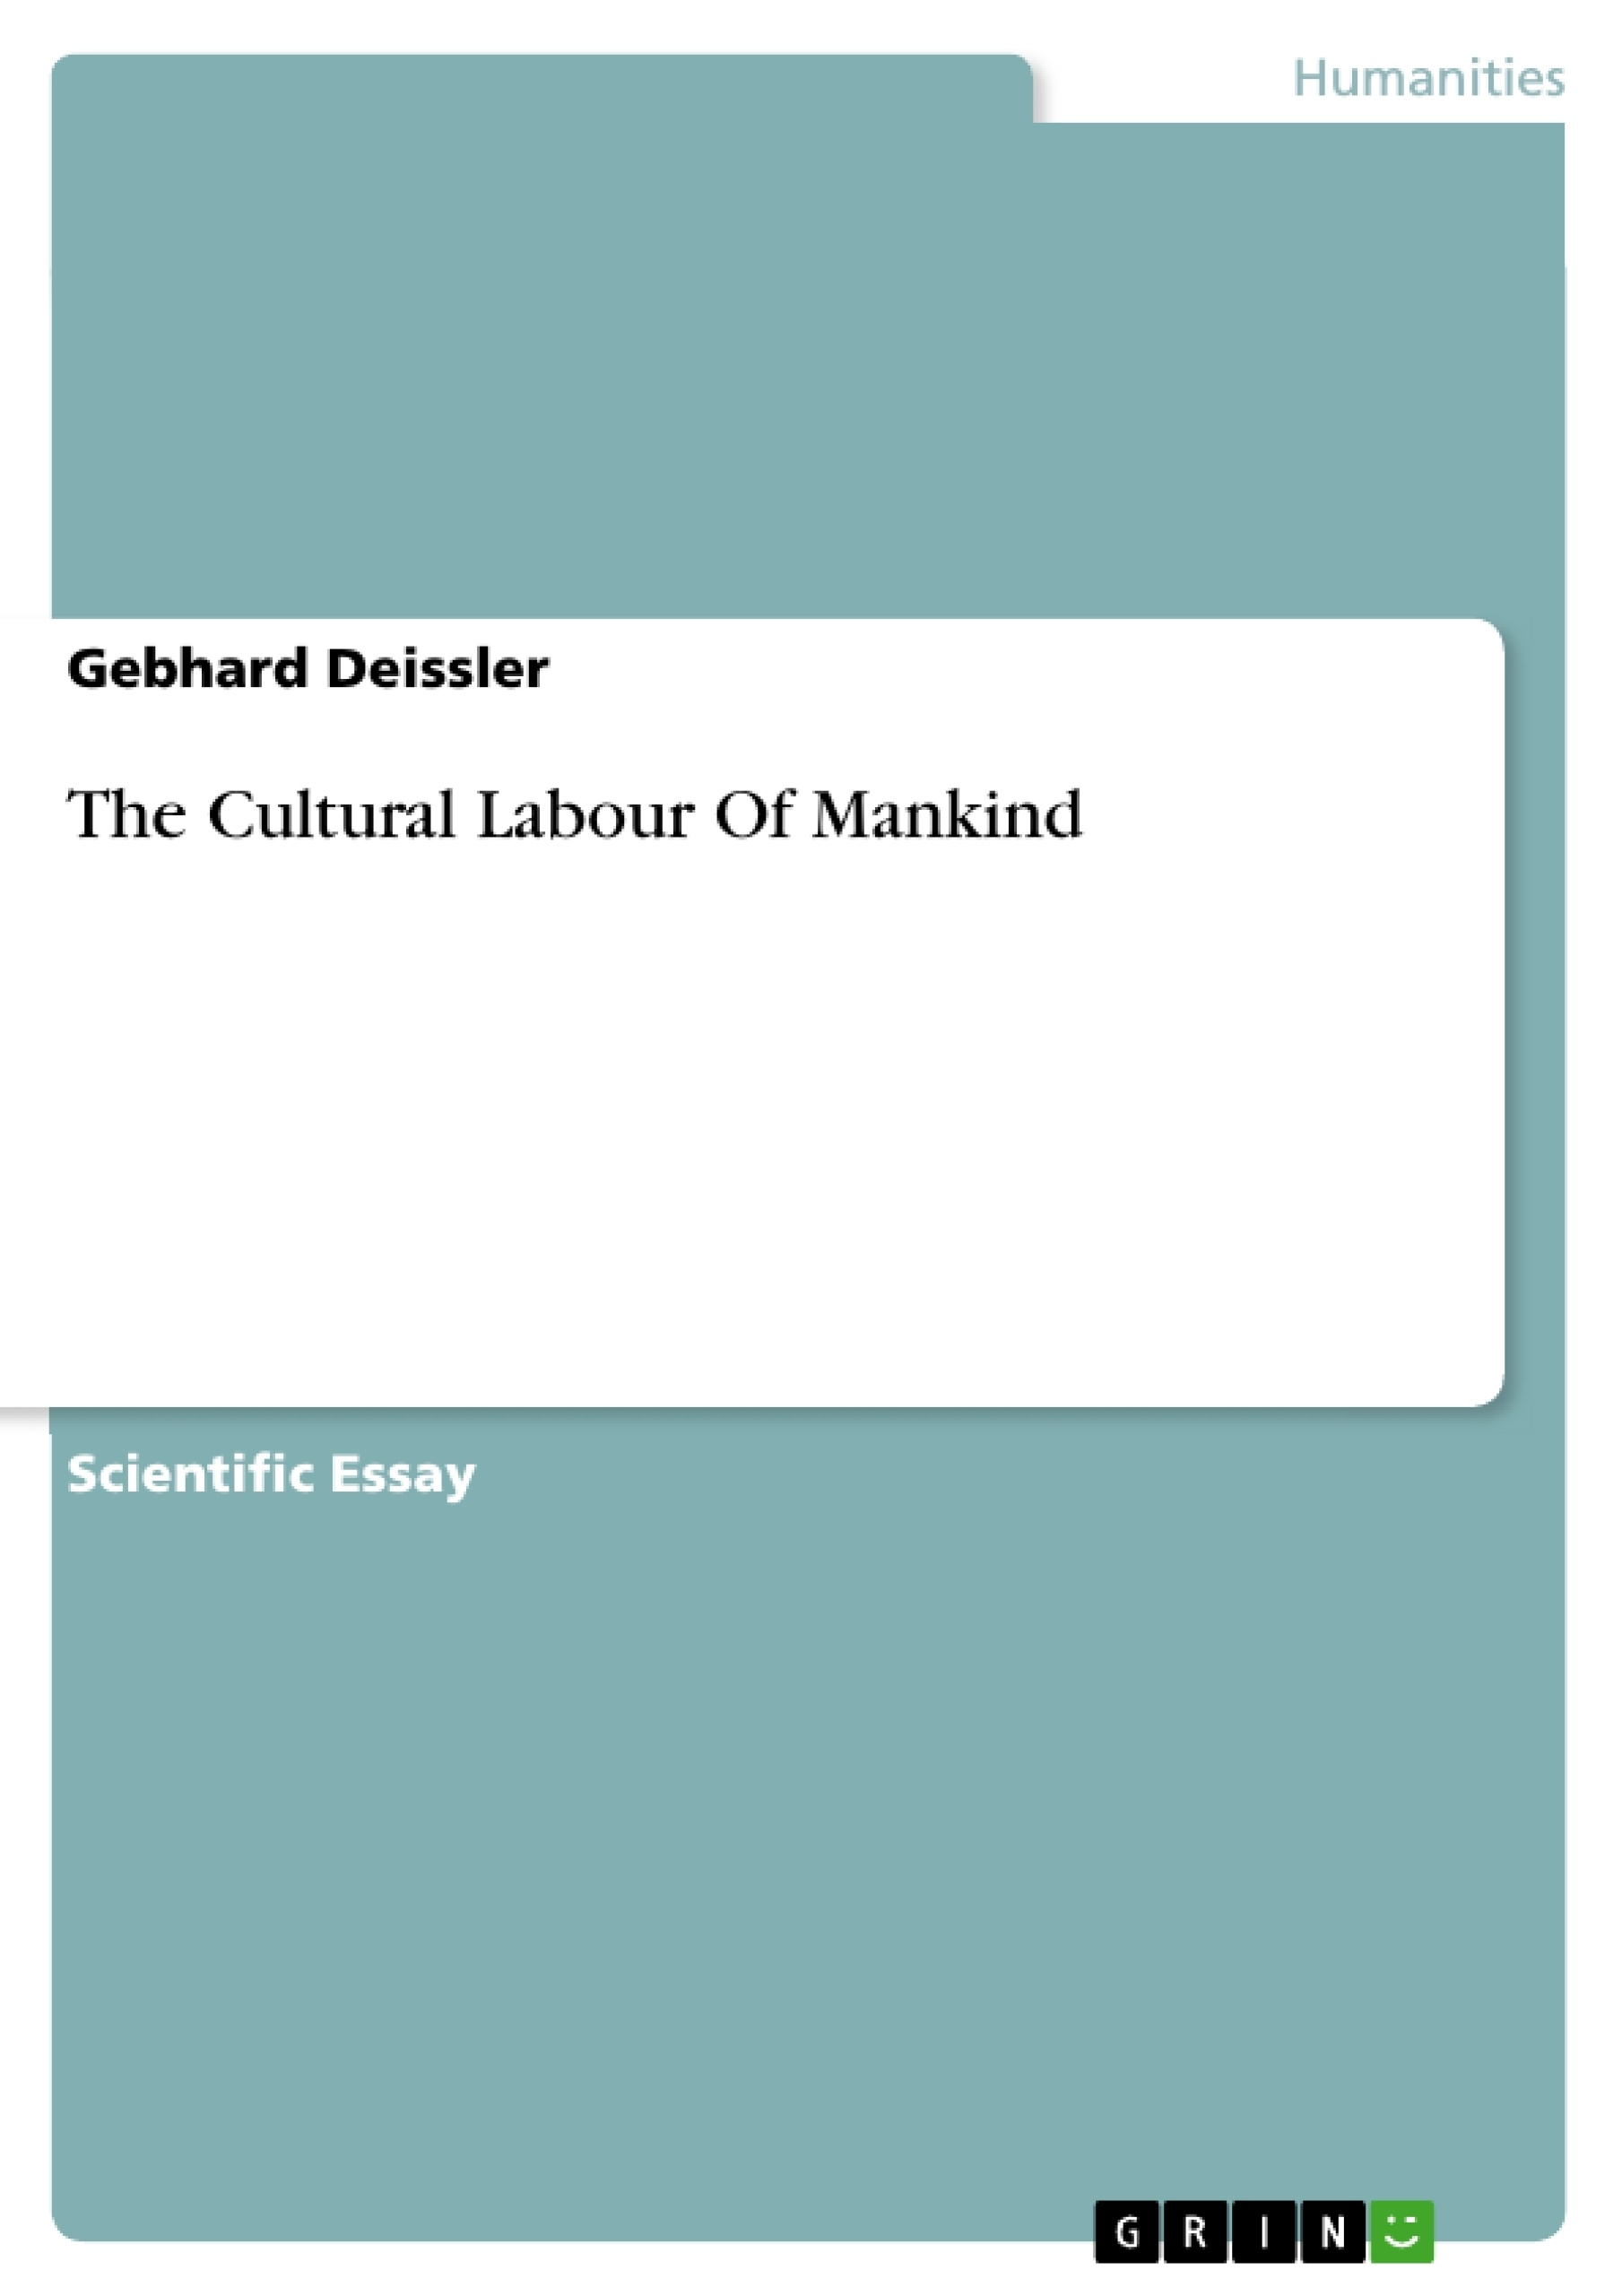 Title: The Cultural Labour Of Mankind